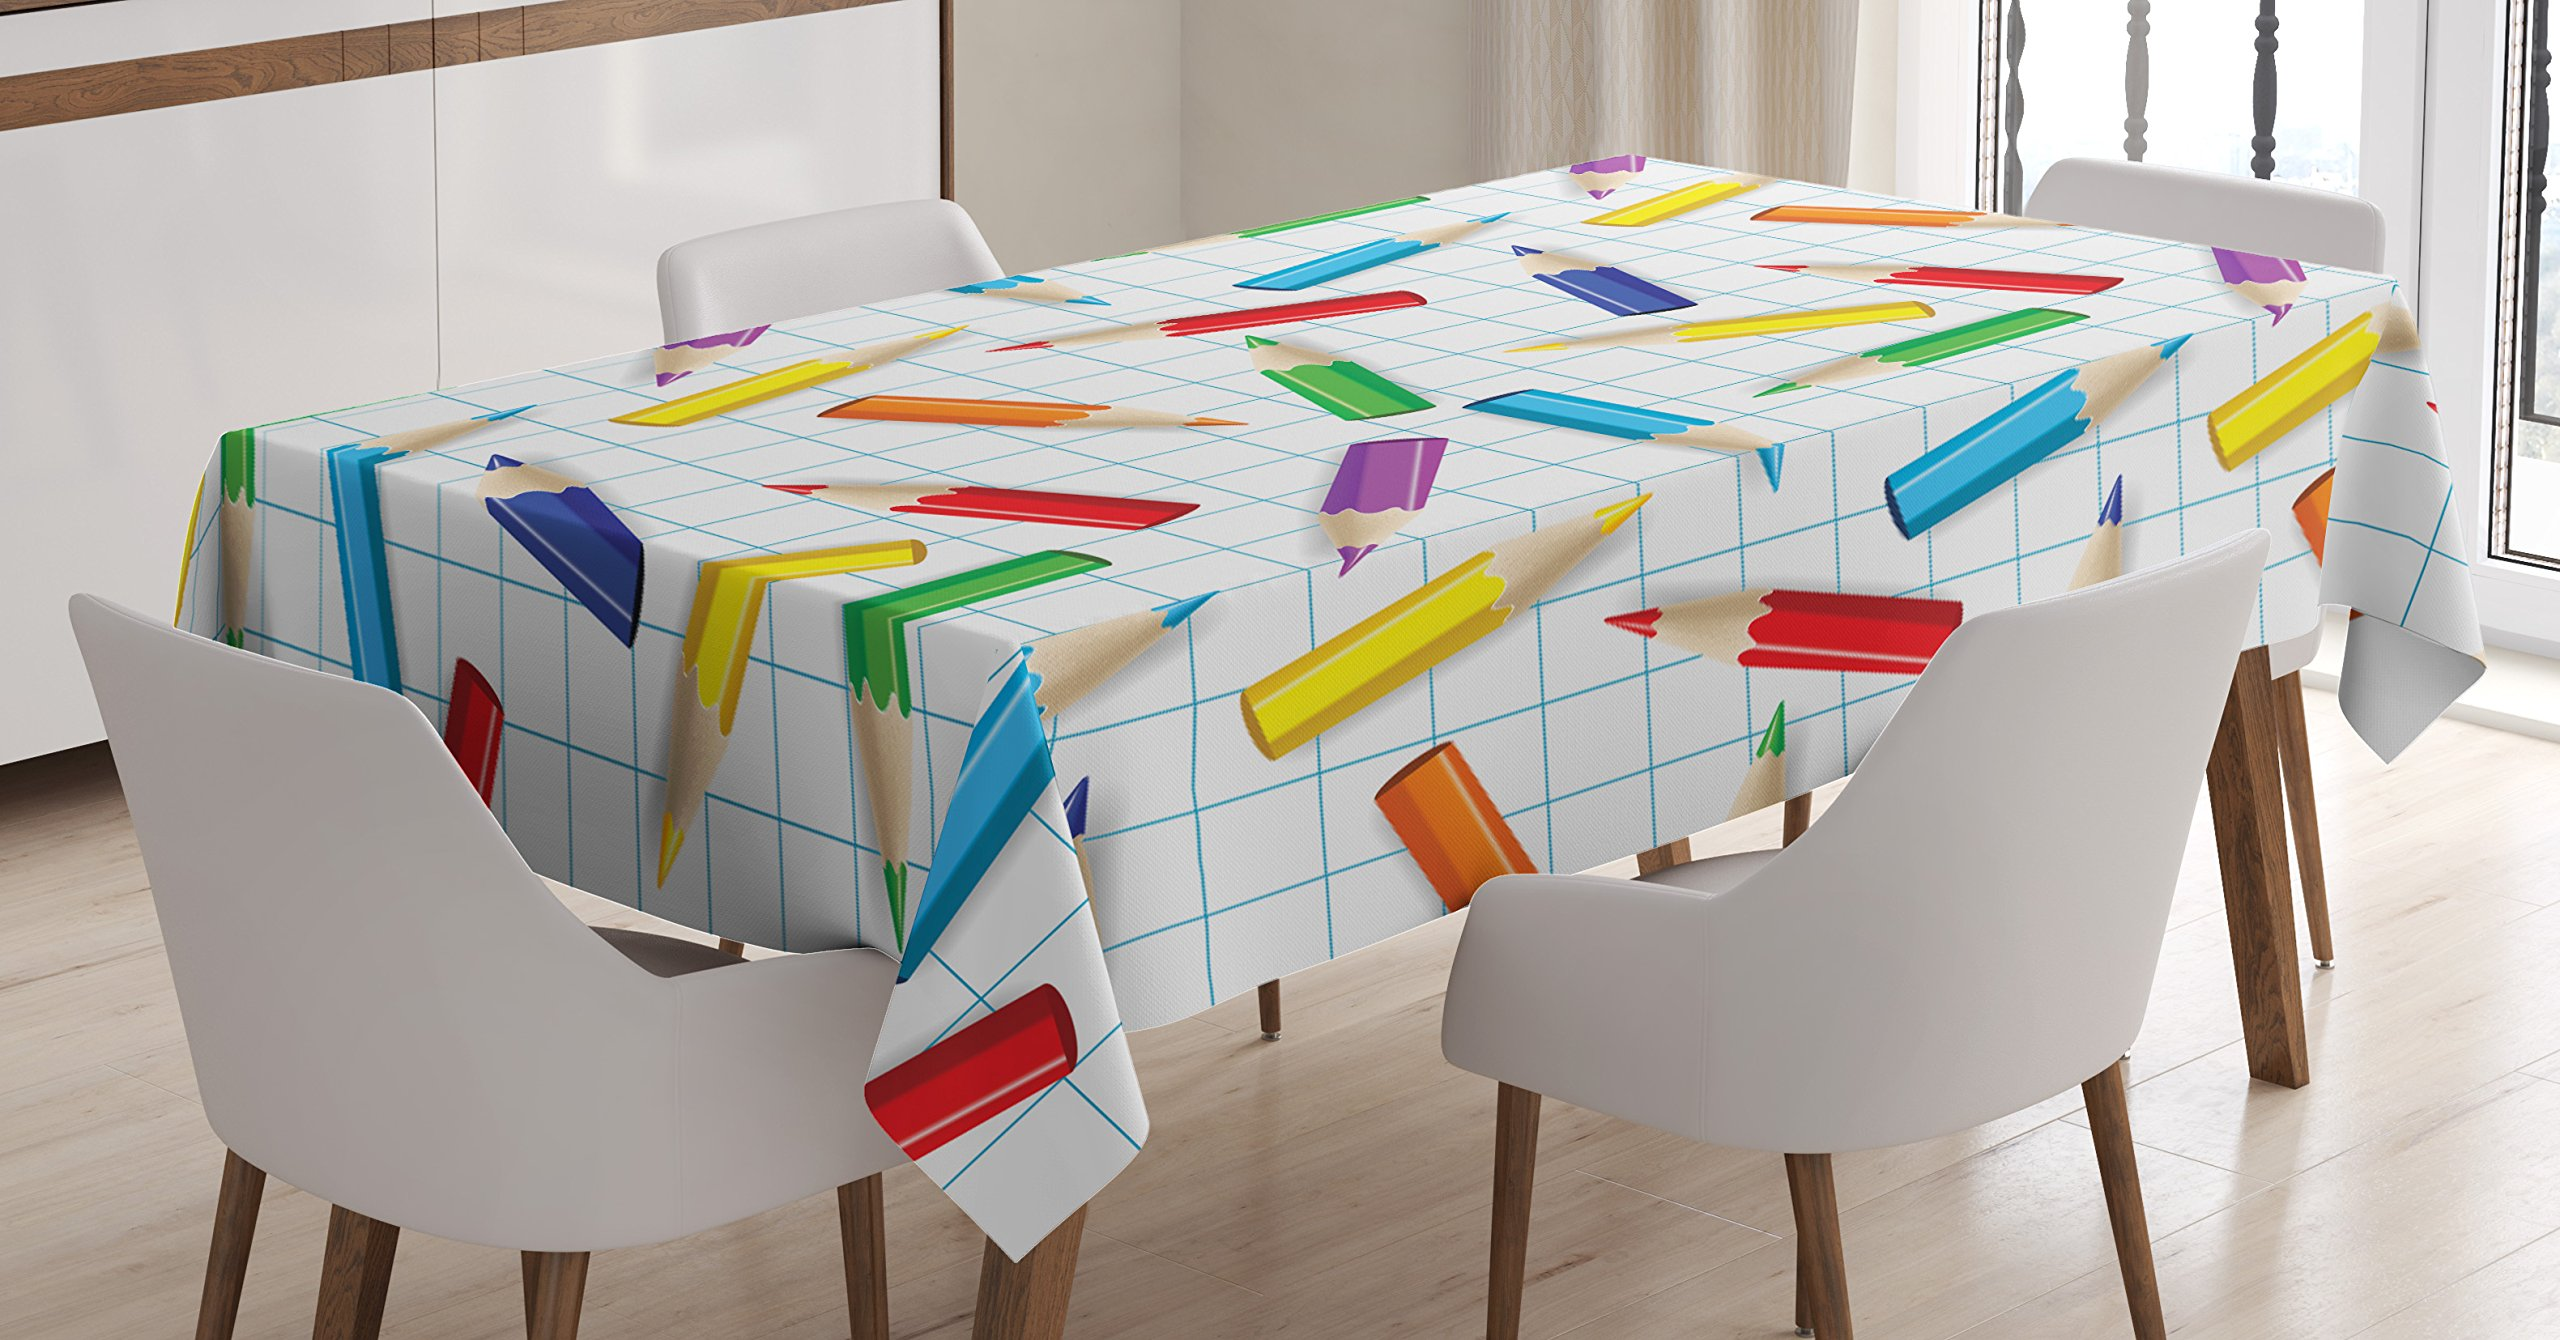 Ambesonne Children Tablecloth by, Colorful Pencils on Checkered Board Kids School Education Creativity Art Image, Dining Room Kitchen Rectangular Table Cover, 60W X 90L Inches, Multicolor